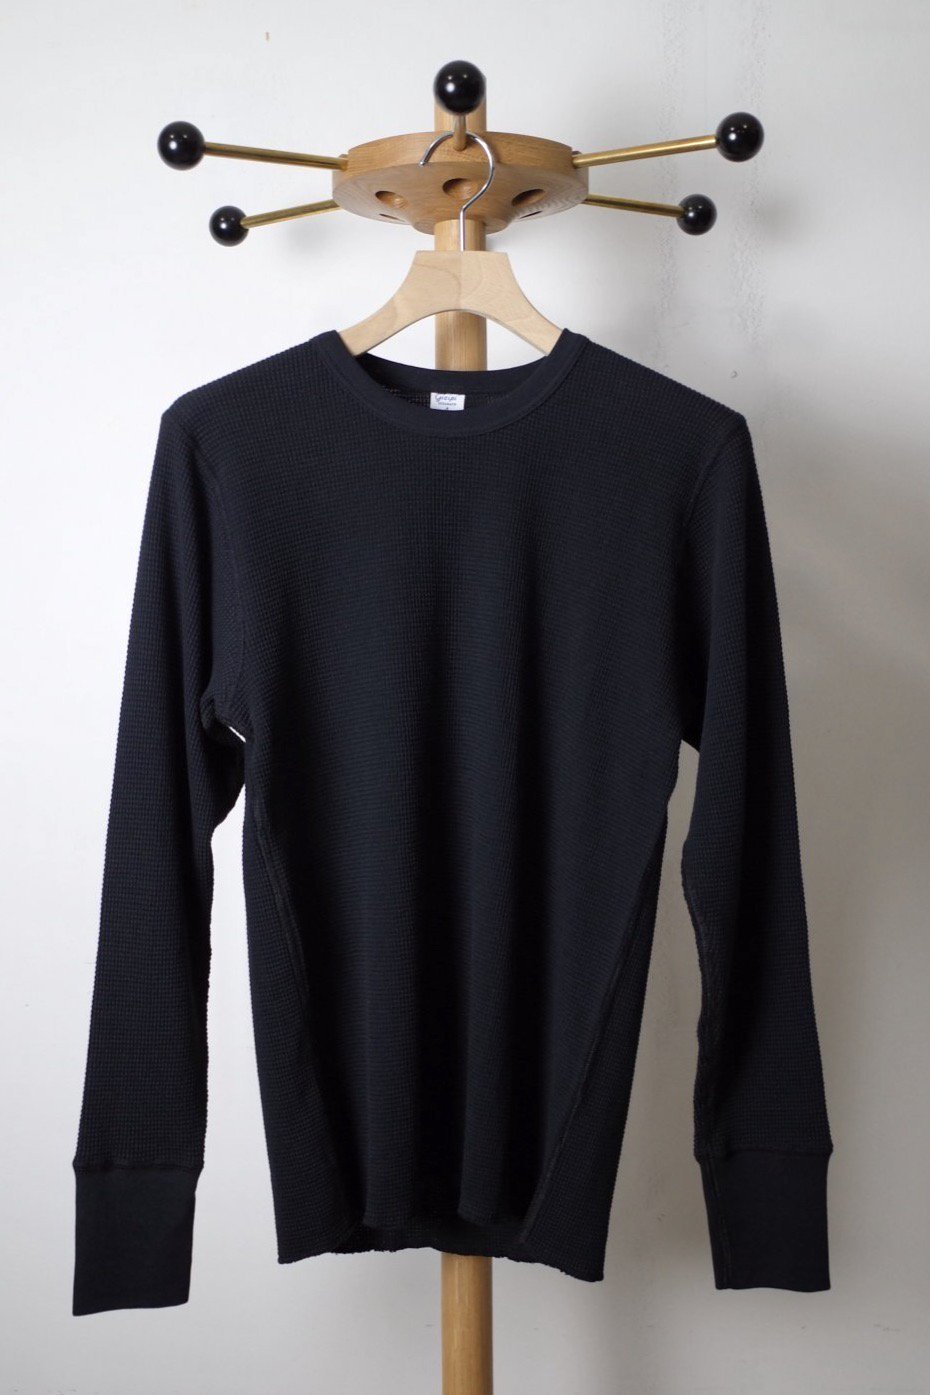 <img class='new_mark_img1' src='https://img.shop-pro.jp/img/new/icons5.gif' style='border:none;display:inline;margin:0px;padding:0px;width:auto;' />gicipi ジチピ-THERMAL LONG SLEEVE-ORSO-BLACK-